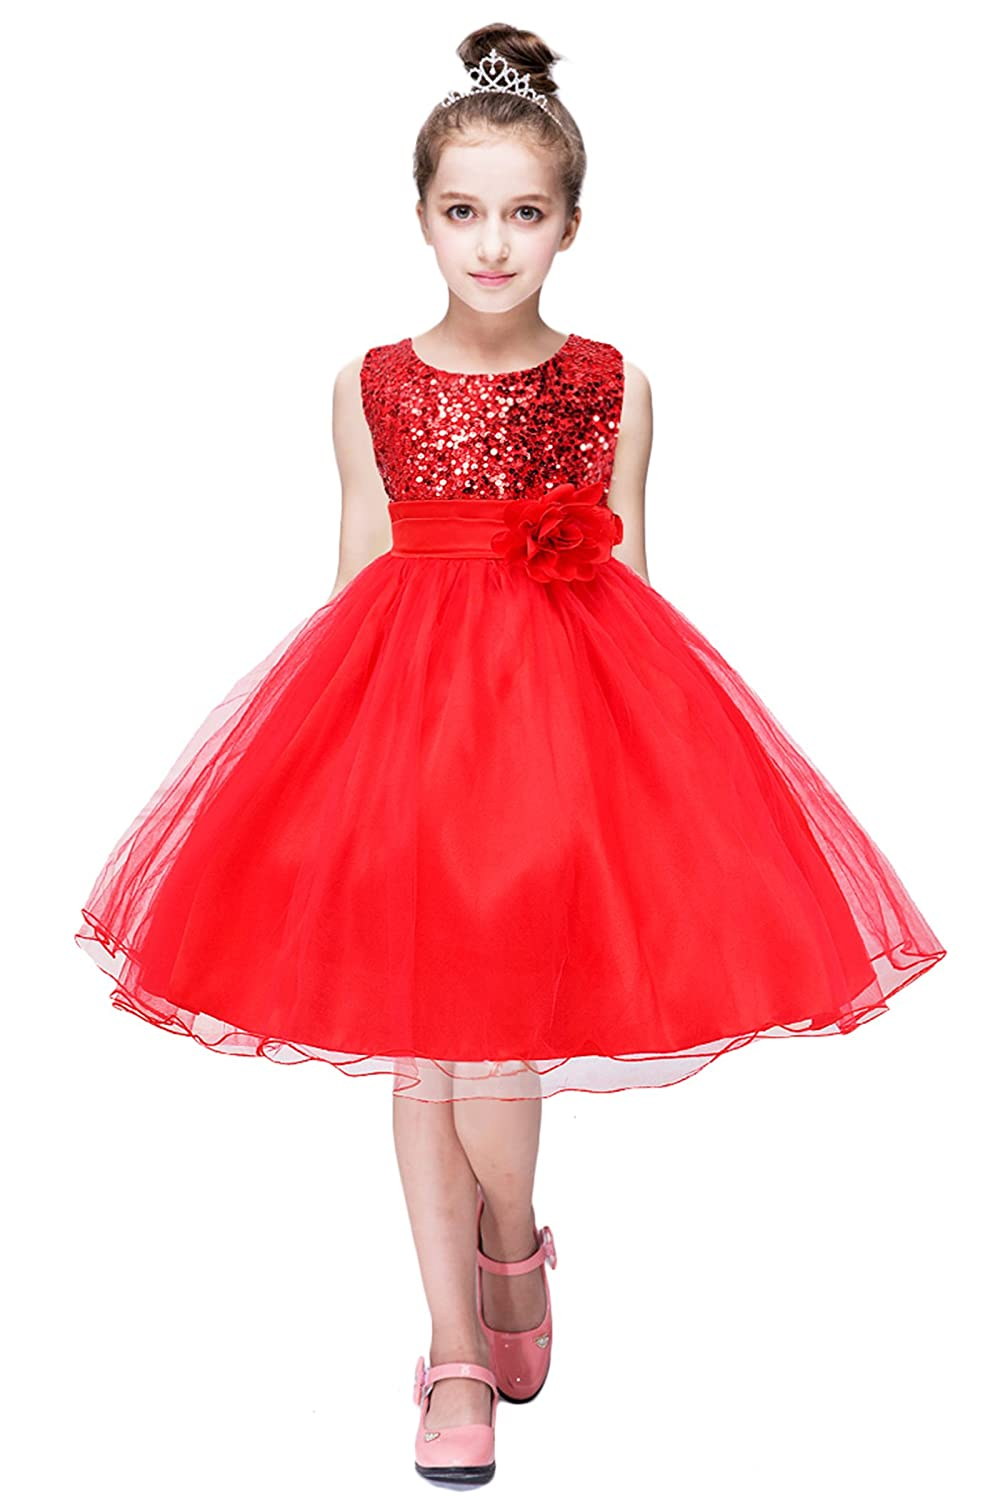 YMING Girls Flower Sequin Princess Dress Sleeveless Tutu Tulle Birthday Party Dress